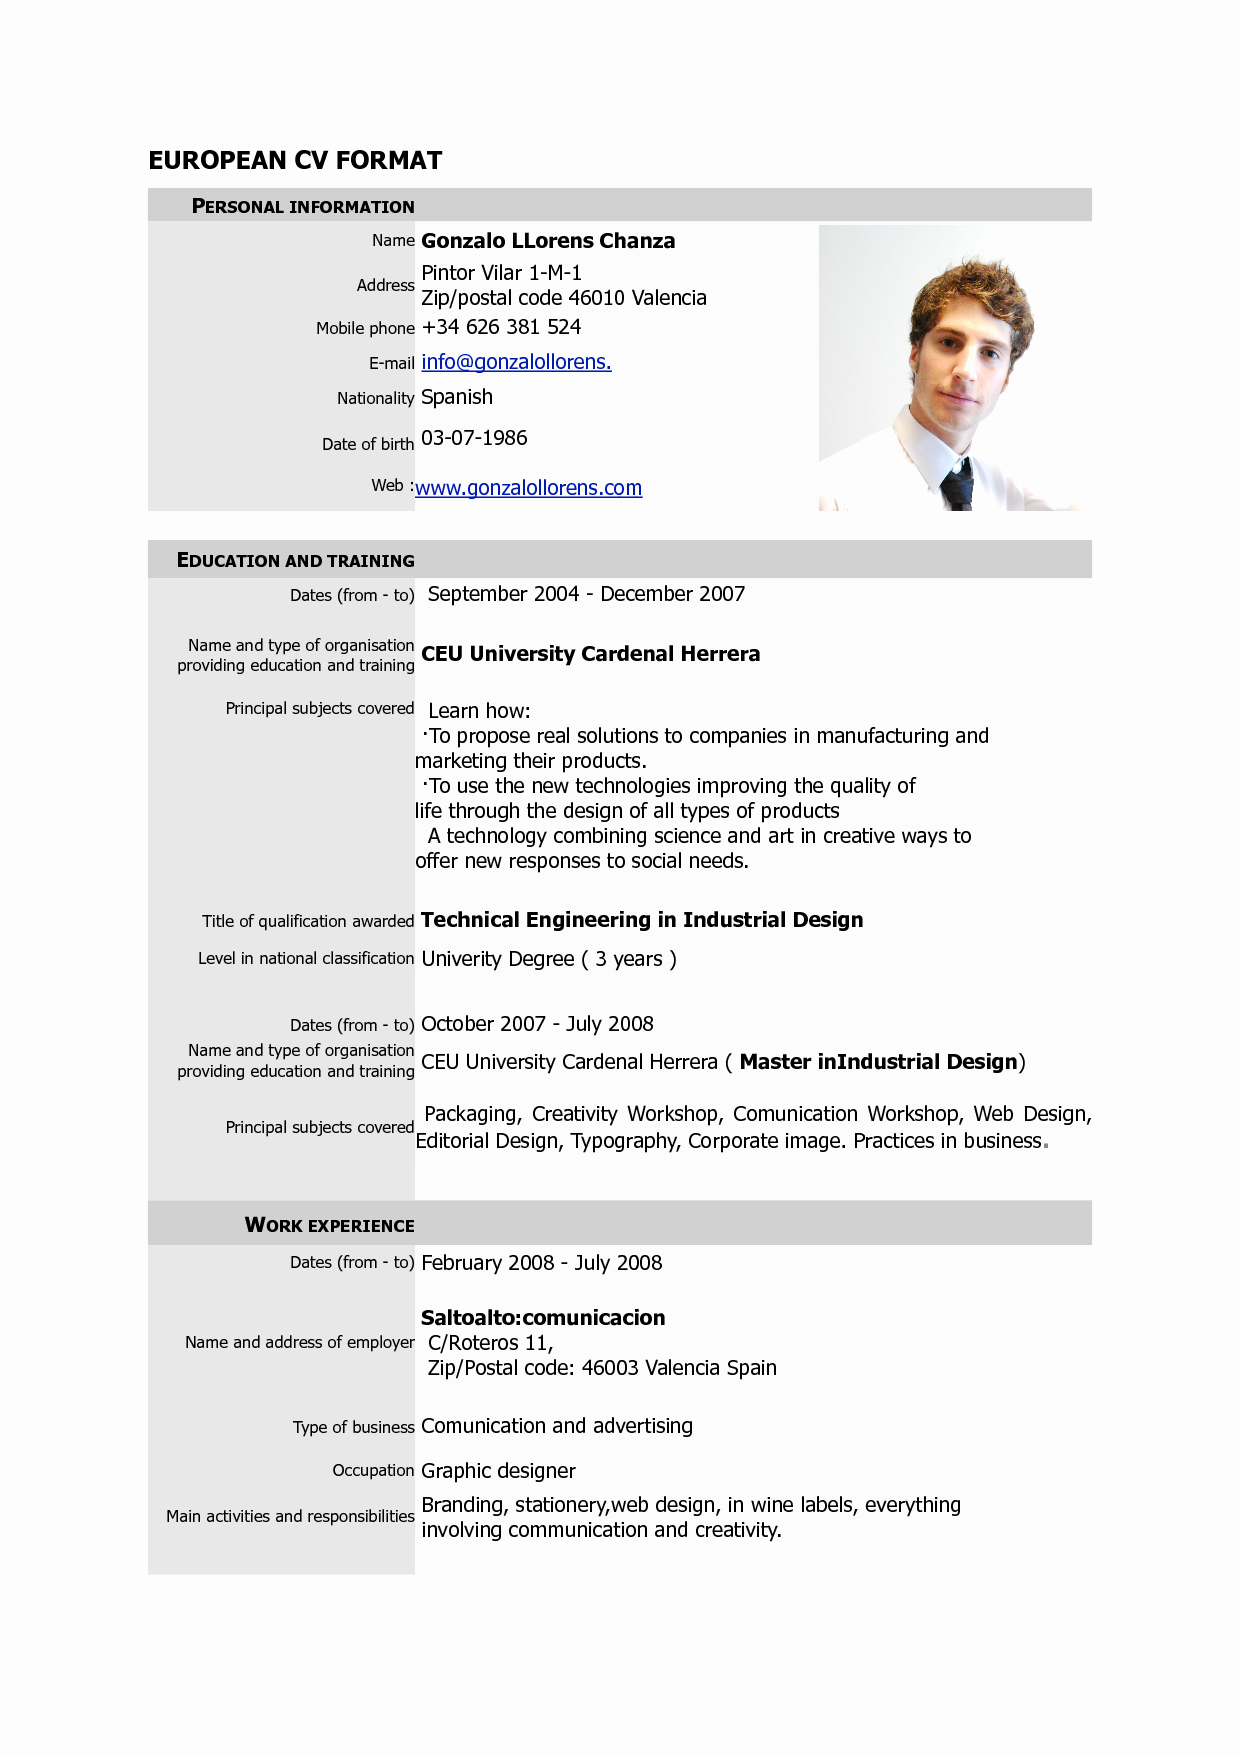 Free Resume Templates Pdf Lovely Free Download Cv Europass Pdf Europass Home European Cv